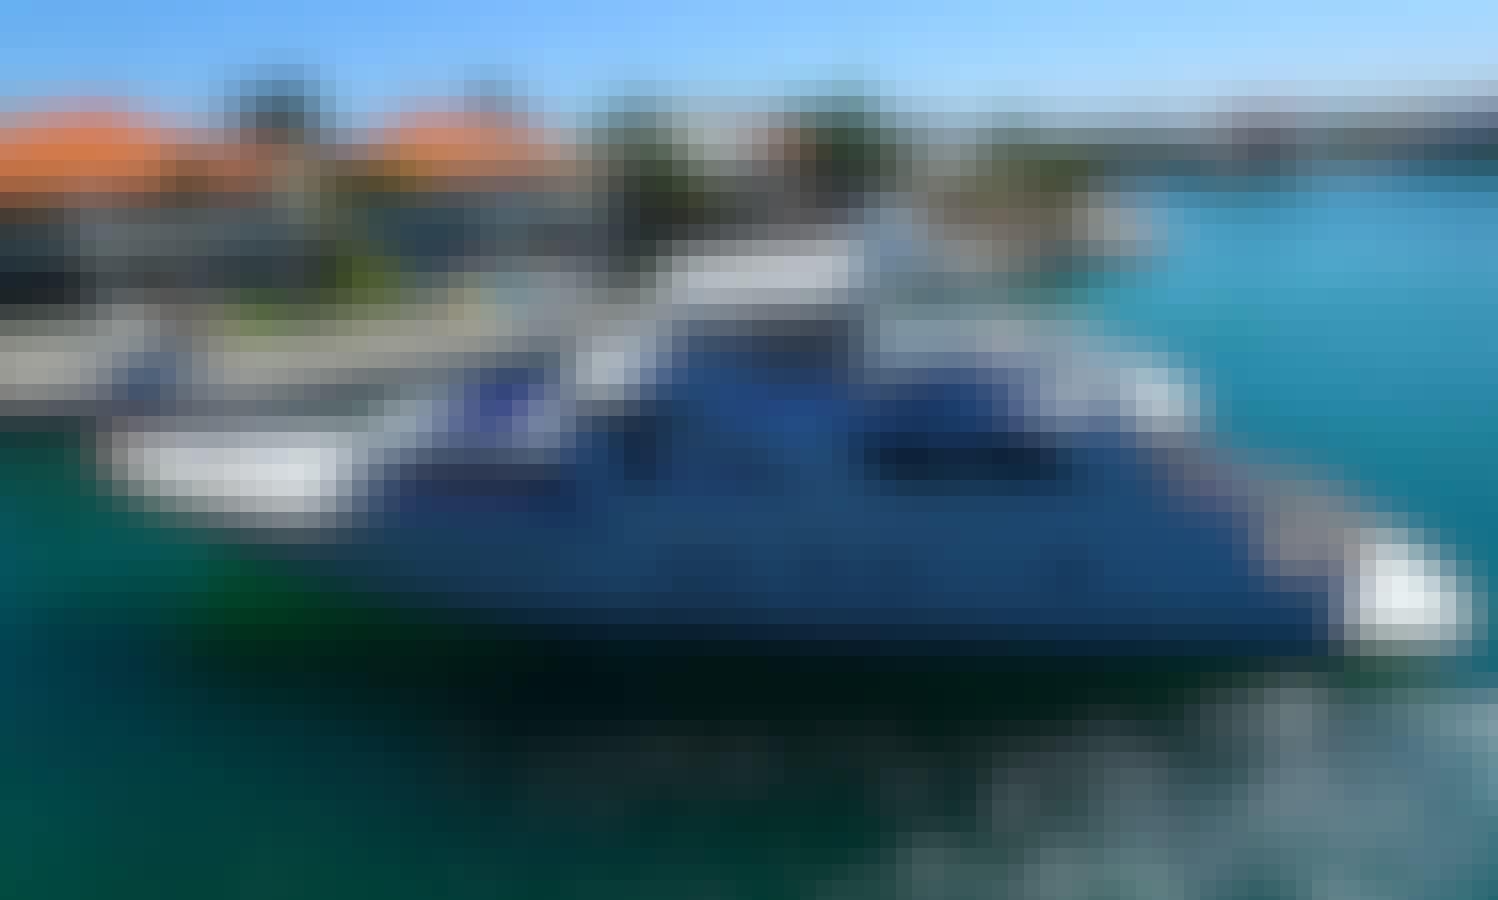 Charter the 80' Motor Yacht Rental near Cancún (Menu and Bar Included Onboard)